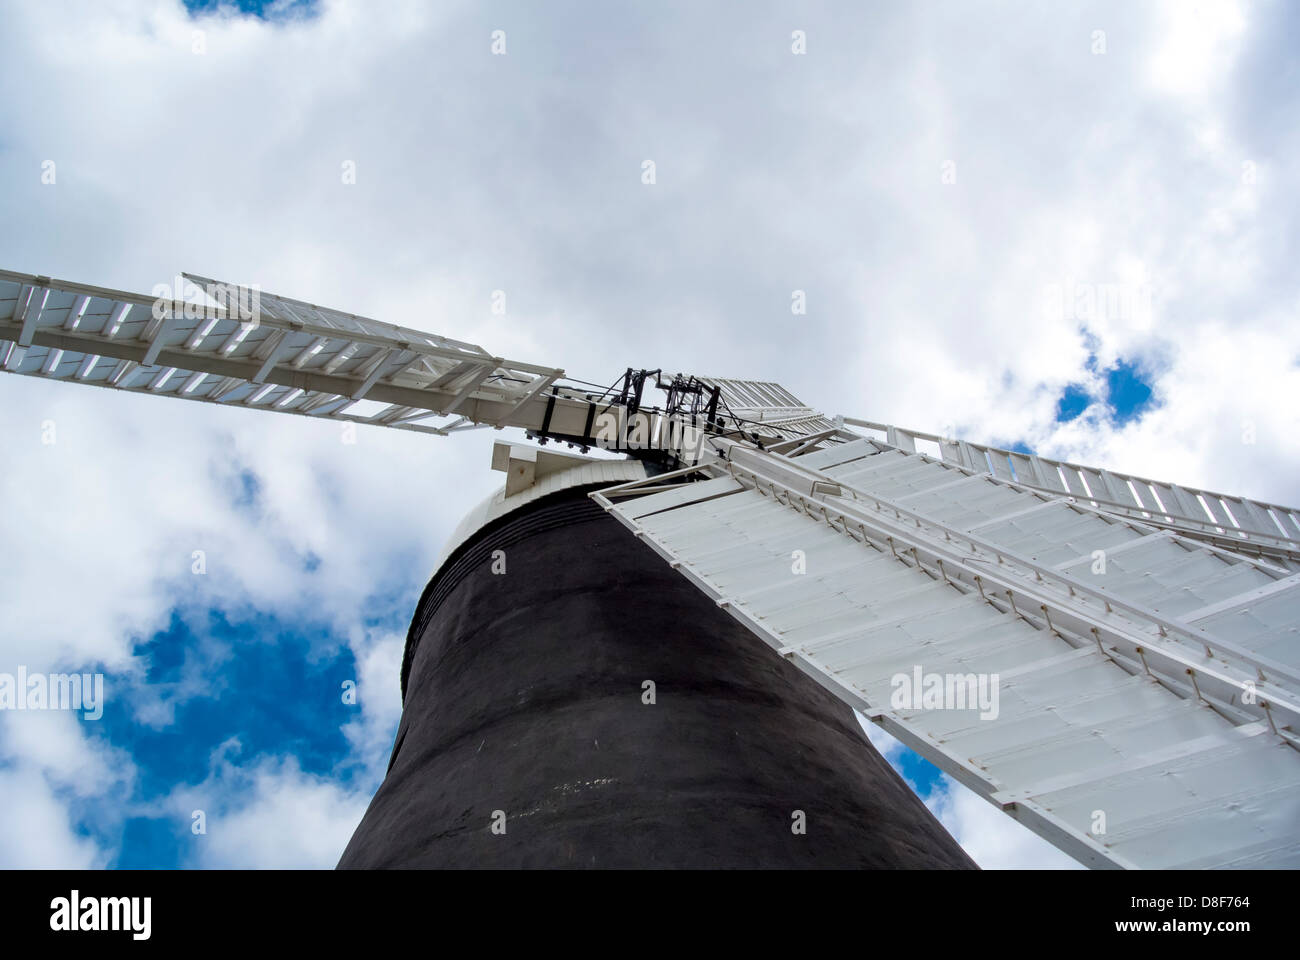 Holgate Windmill, Shot from low angle looking up into sails. York, UK - Stock Image